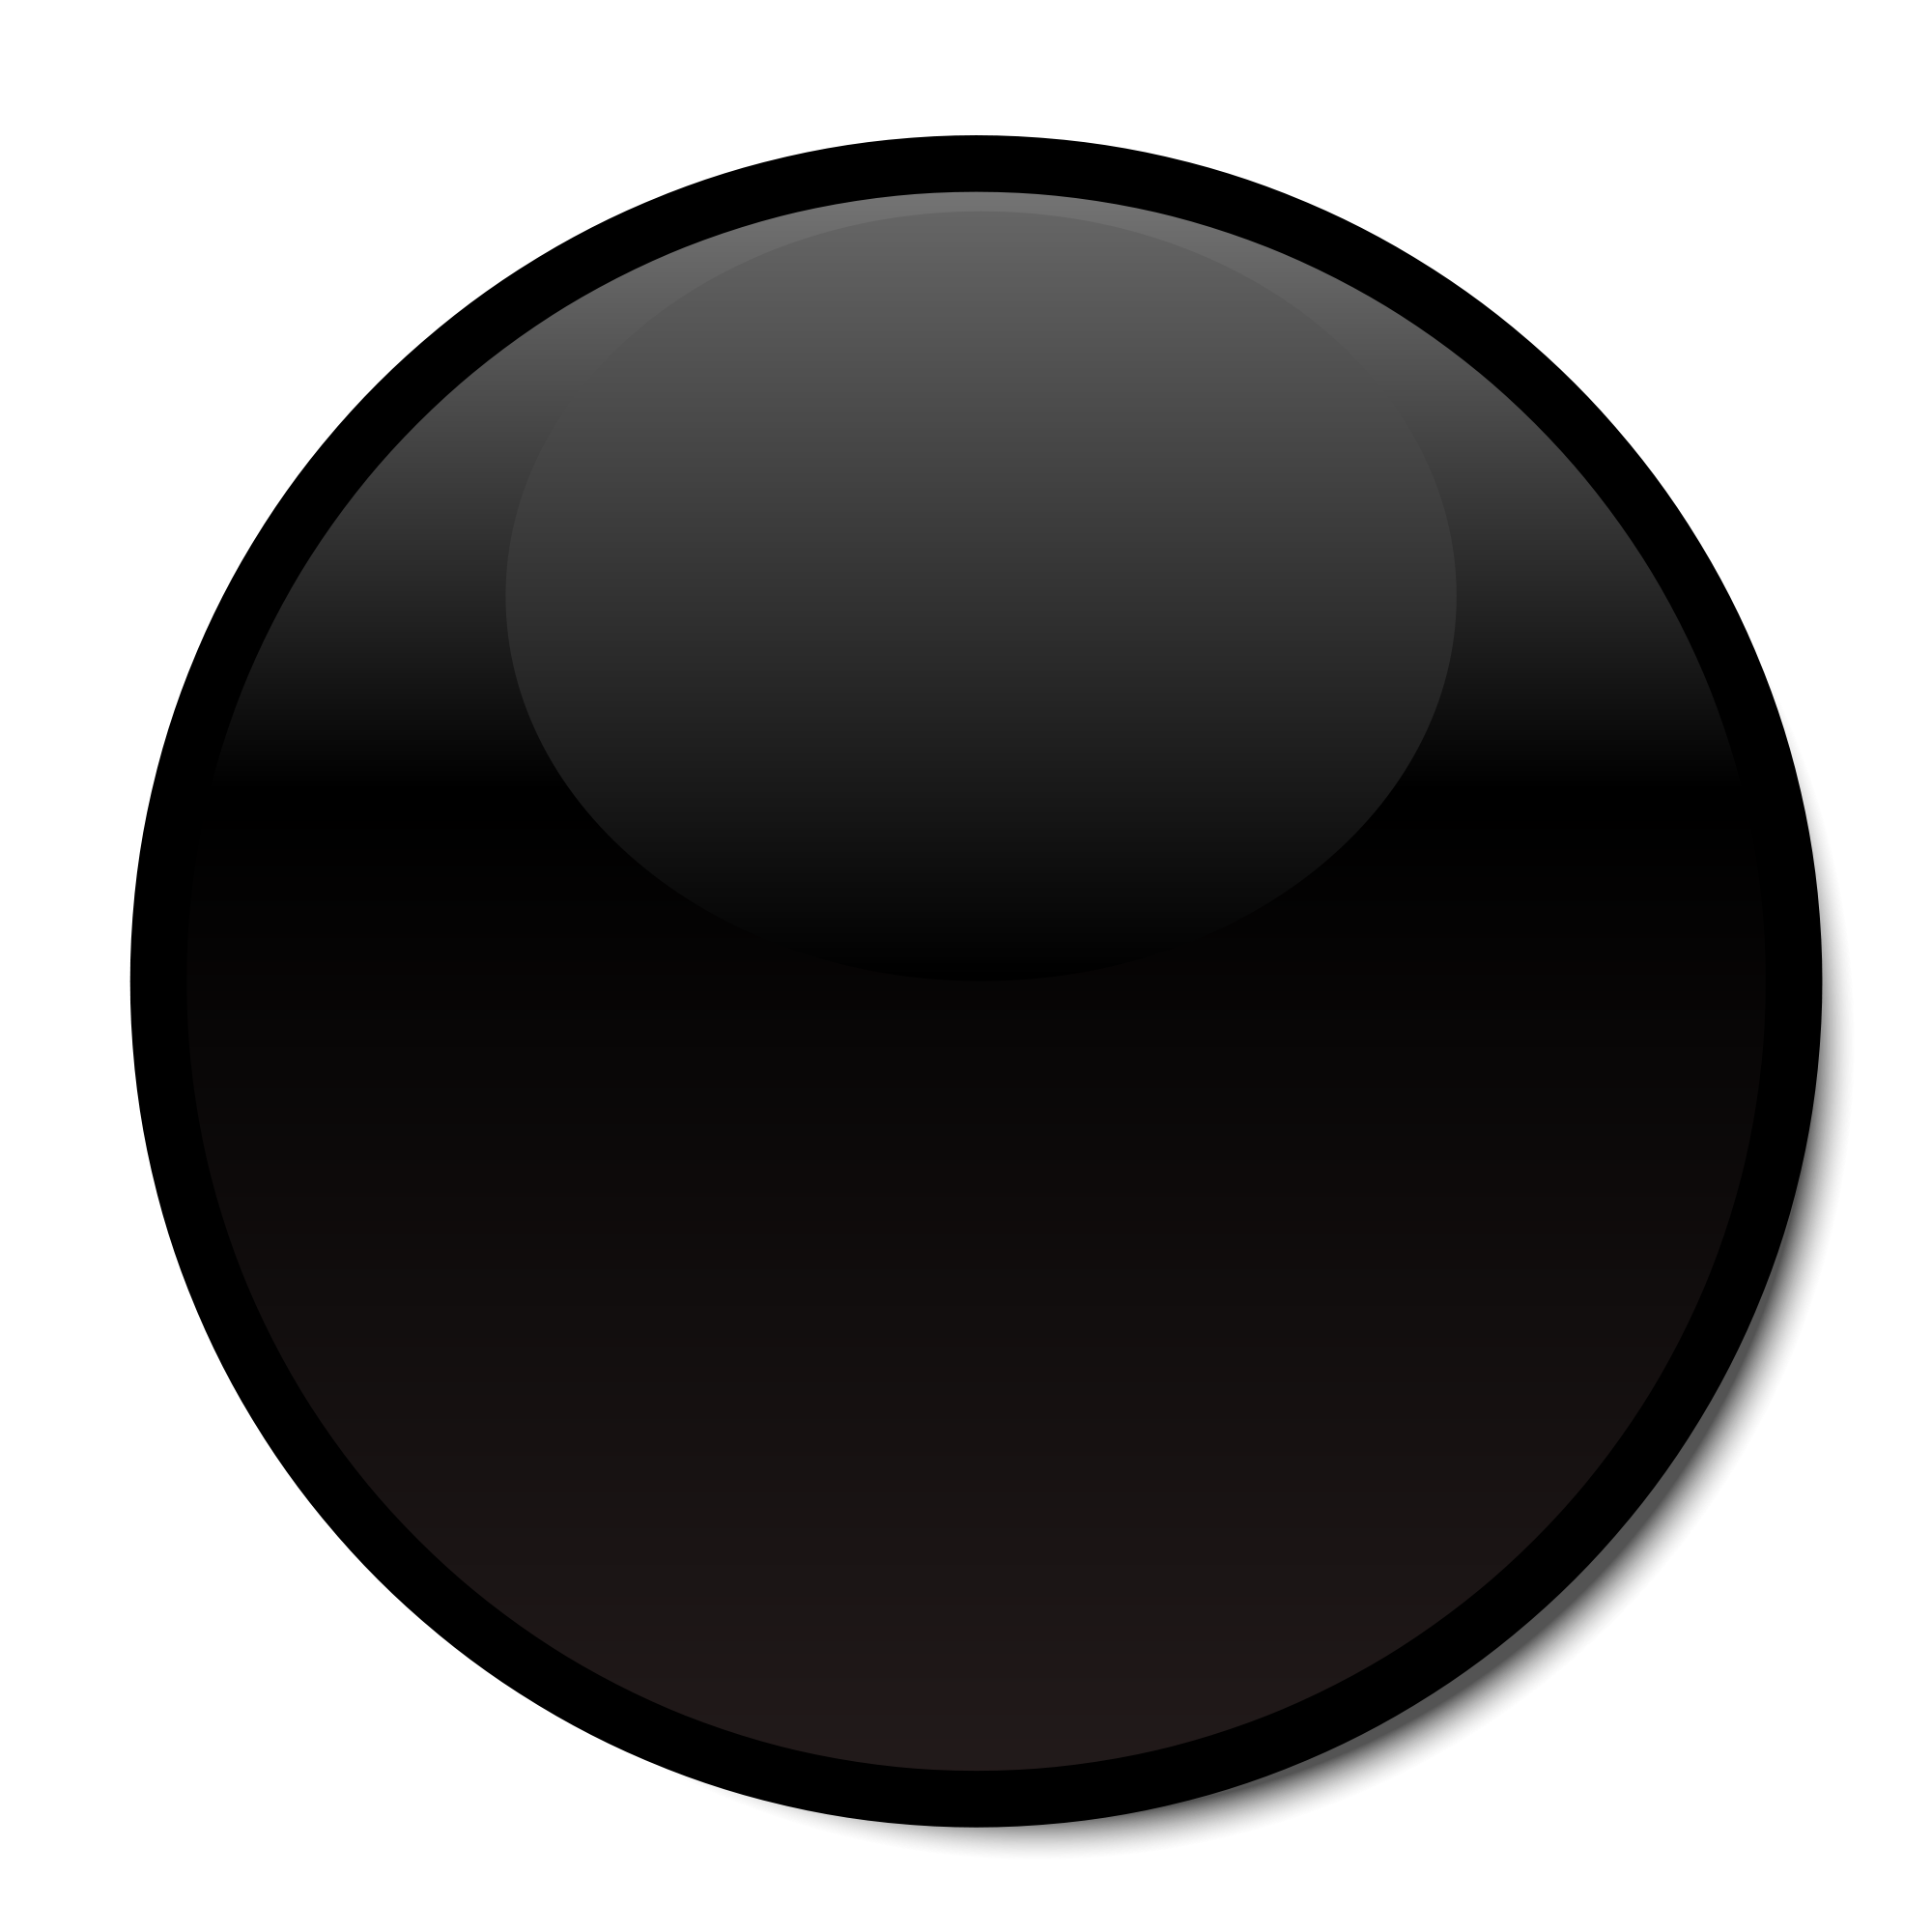 graphic black and white download transparent sphere black #106619932